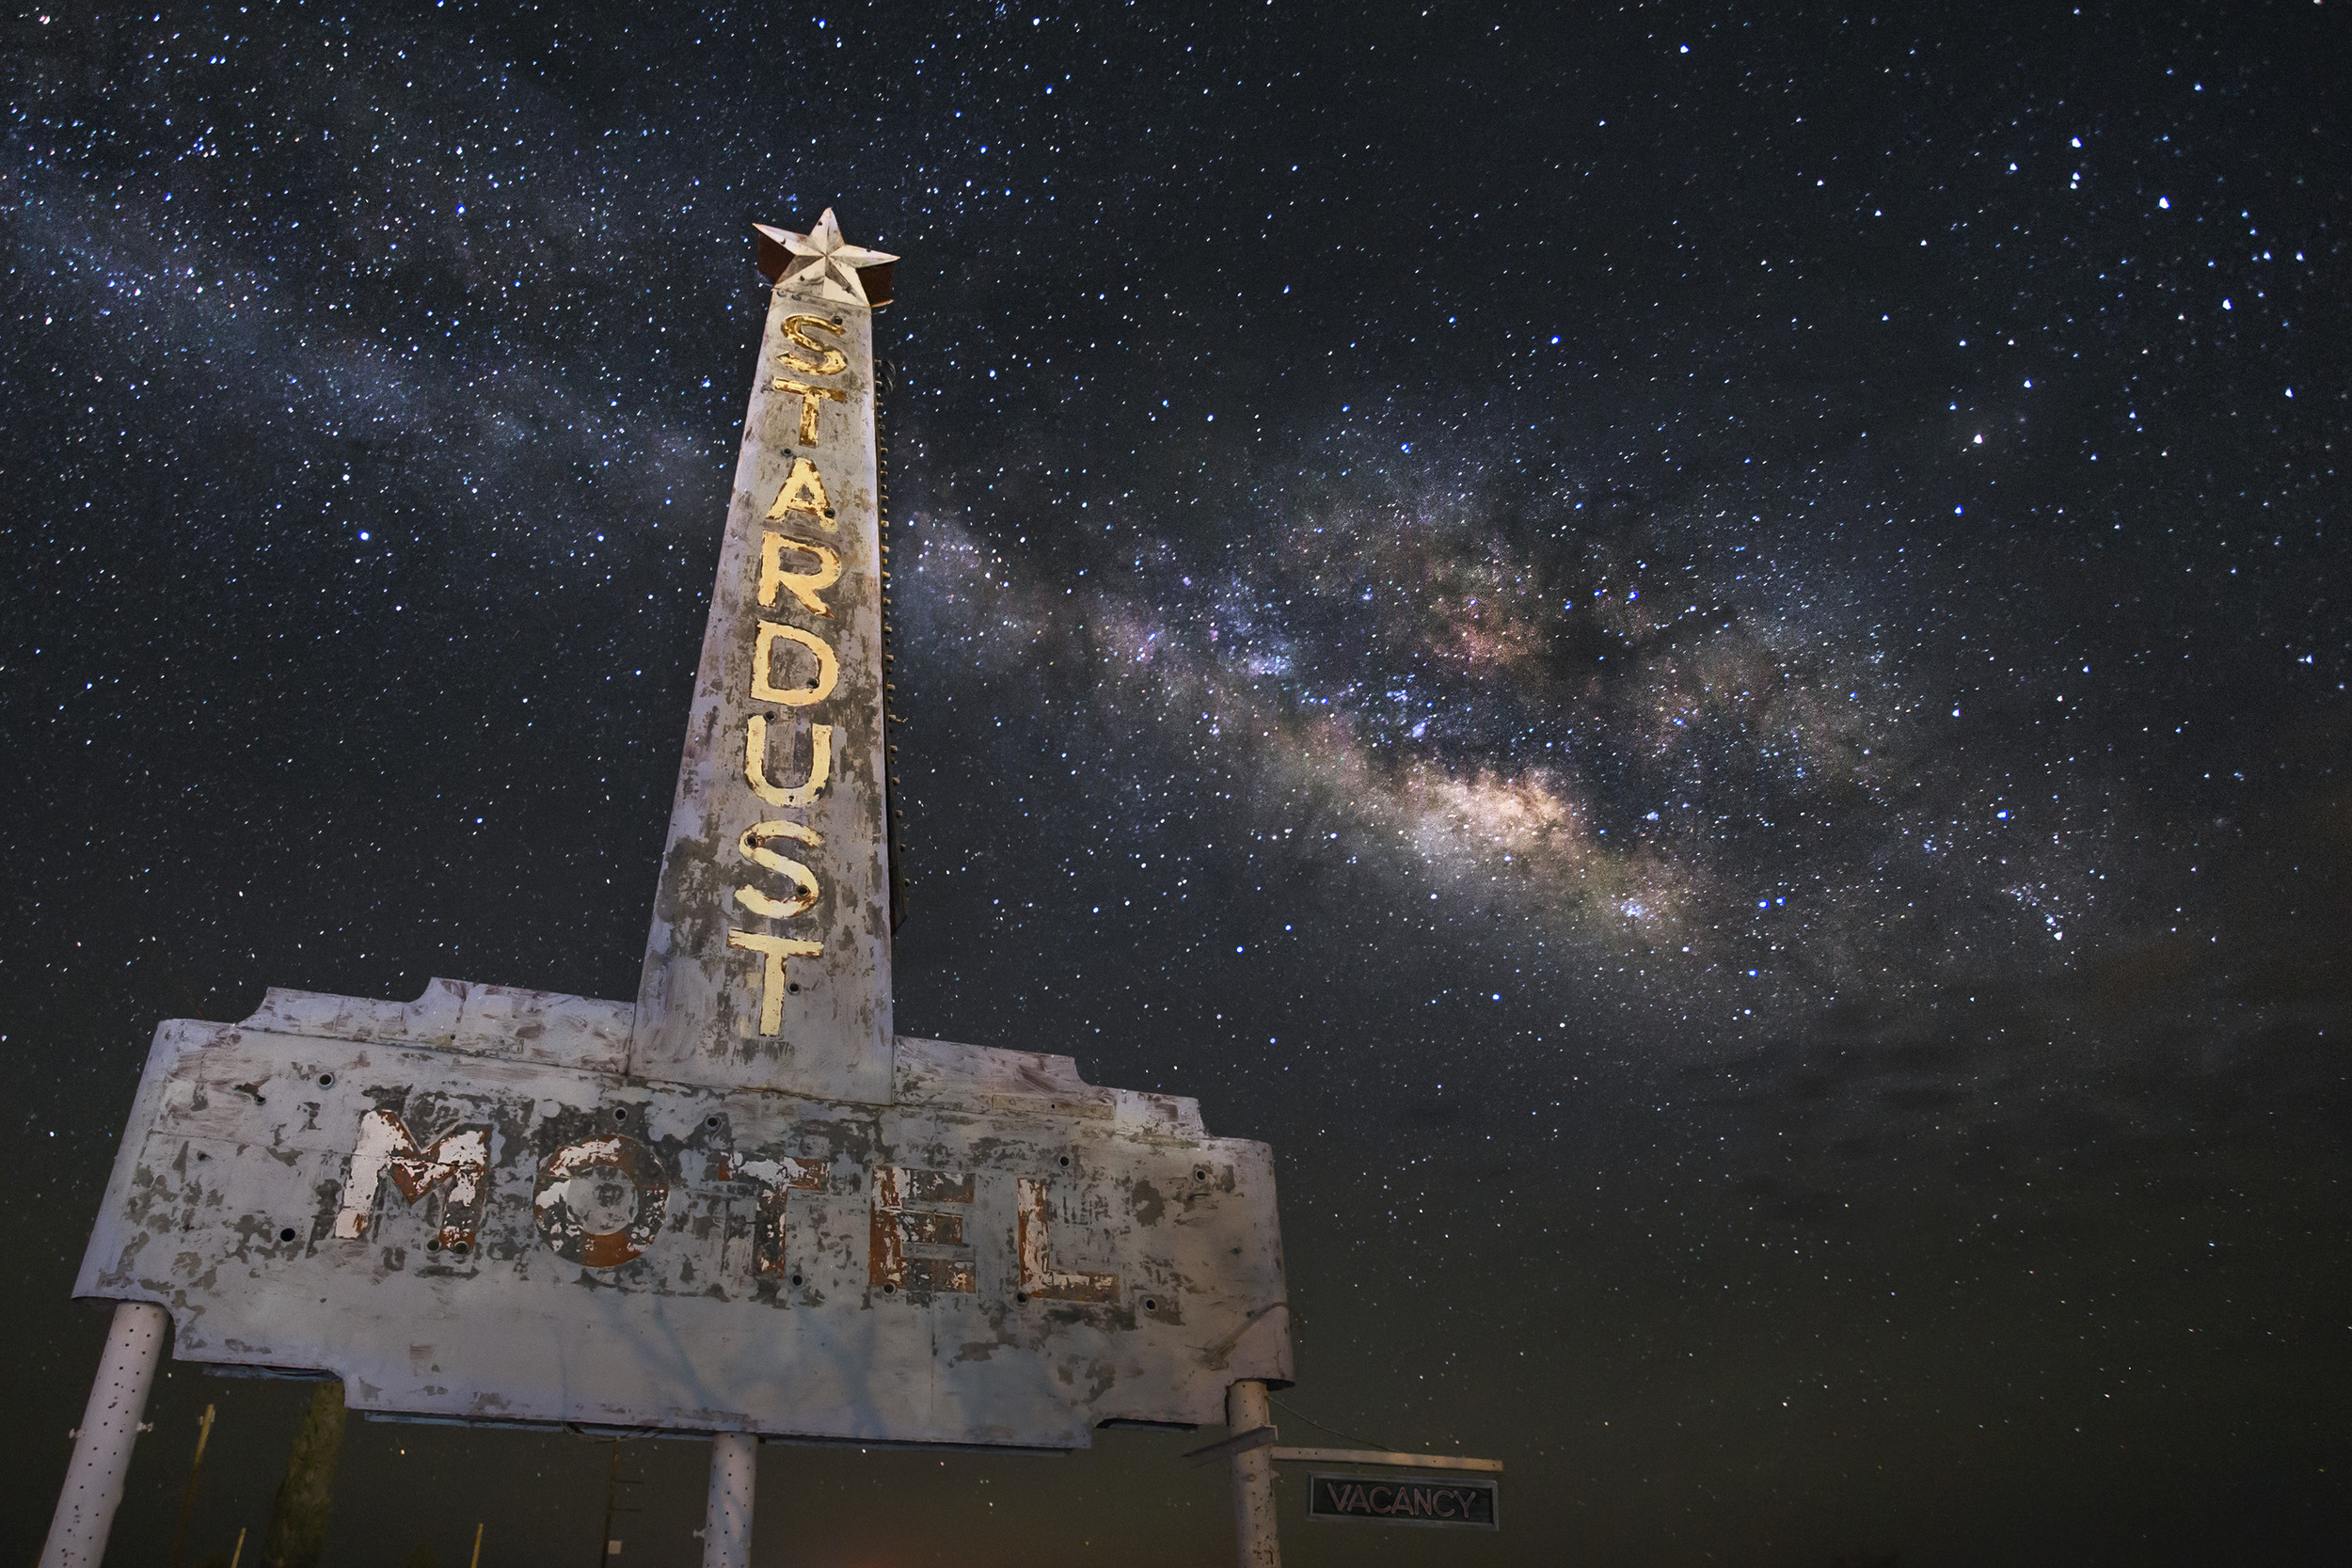 All that remains of the Stardust Motel in Marfa.